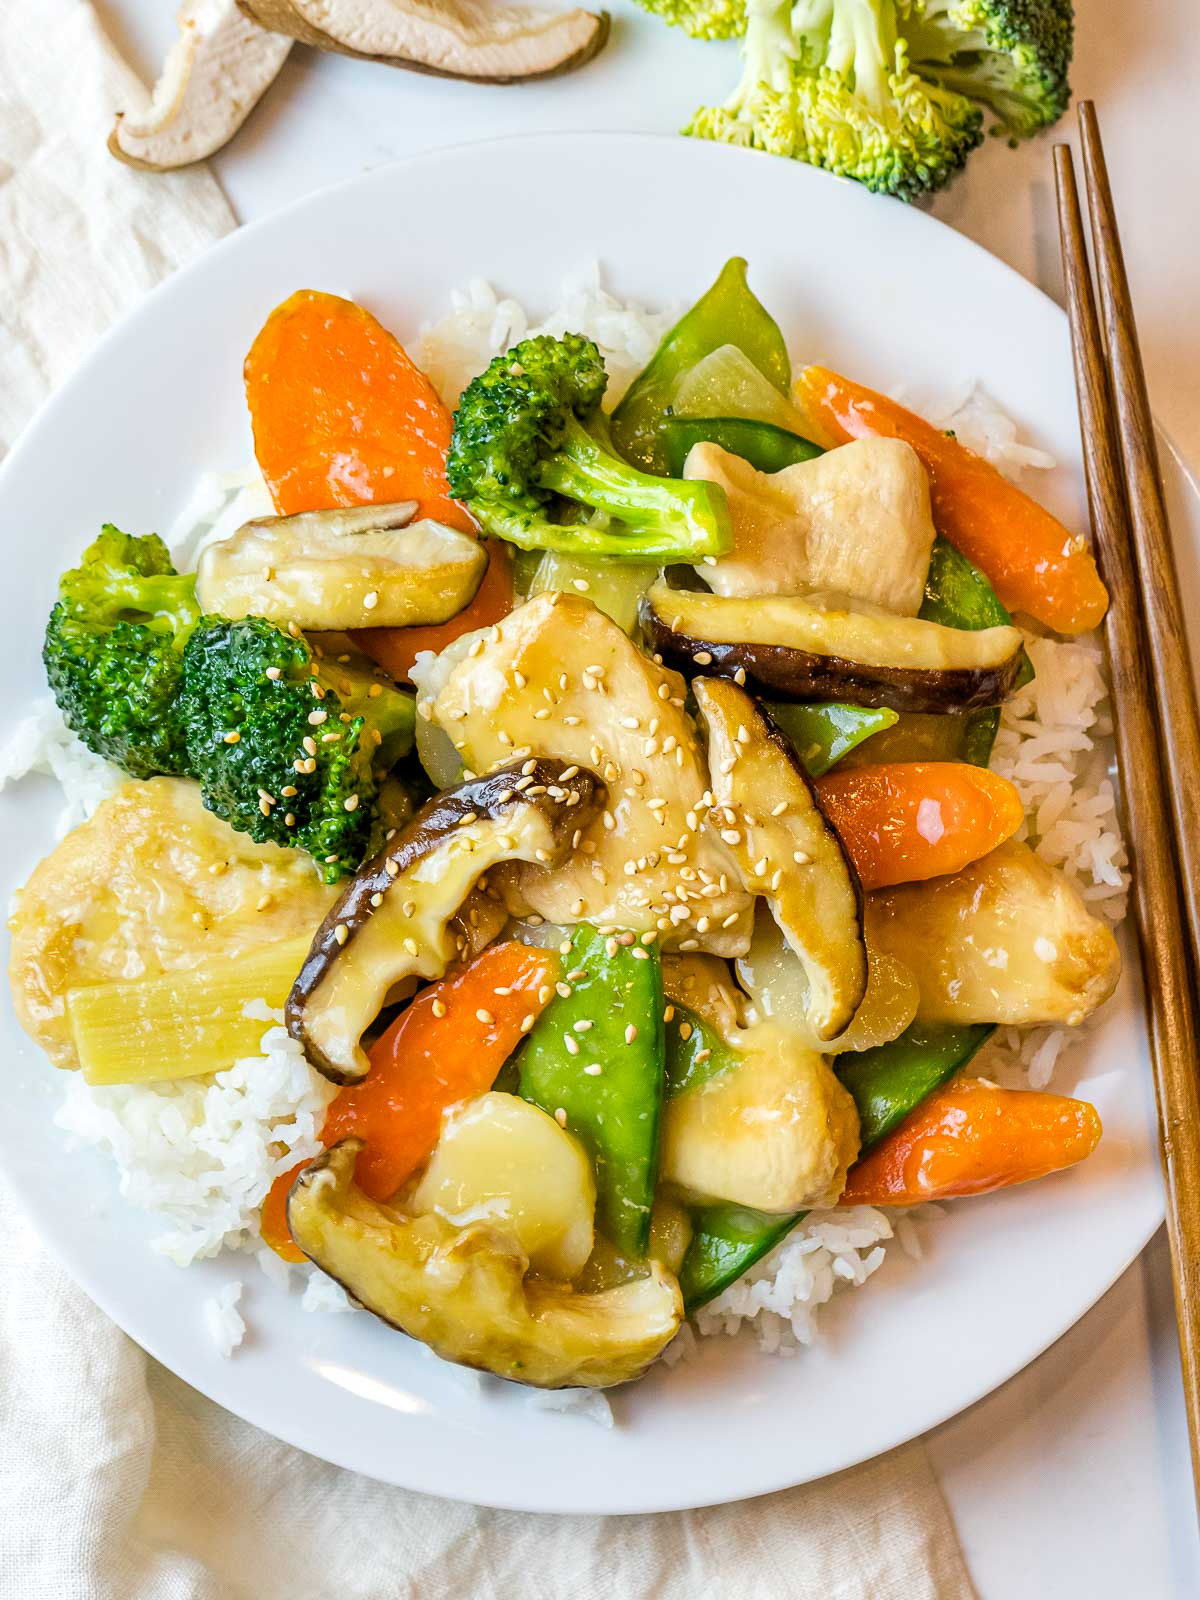 moo goo gai pan with rice on a white plate next to chopsticks